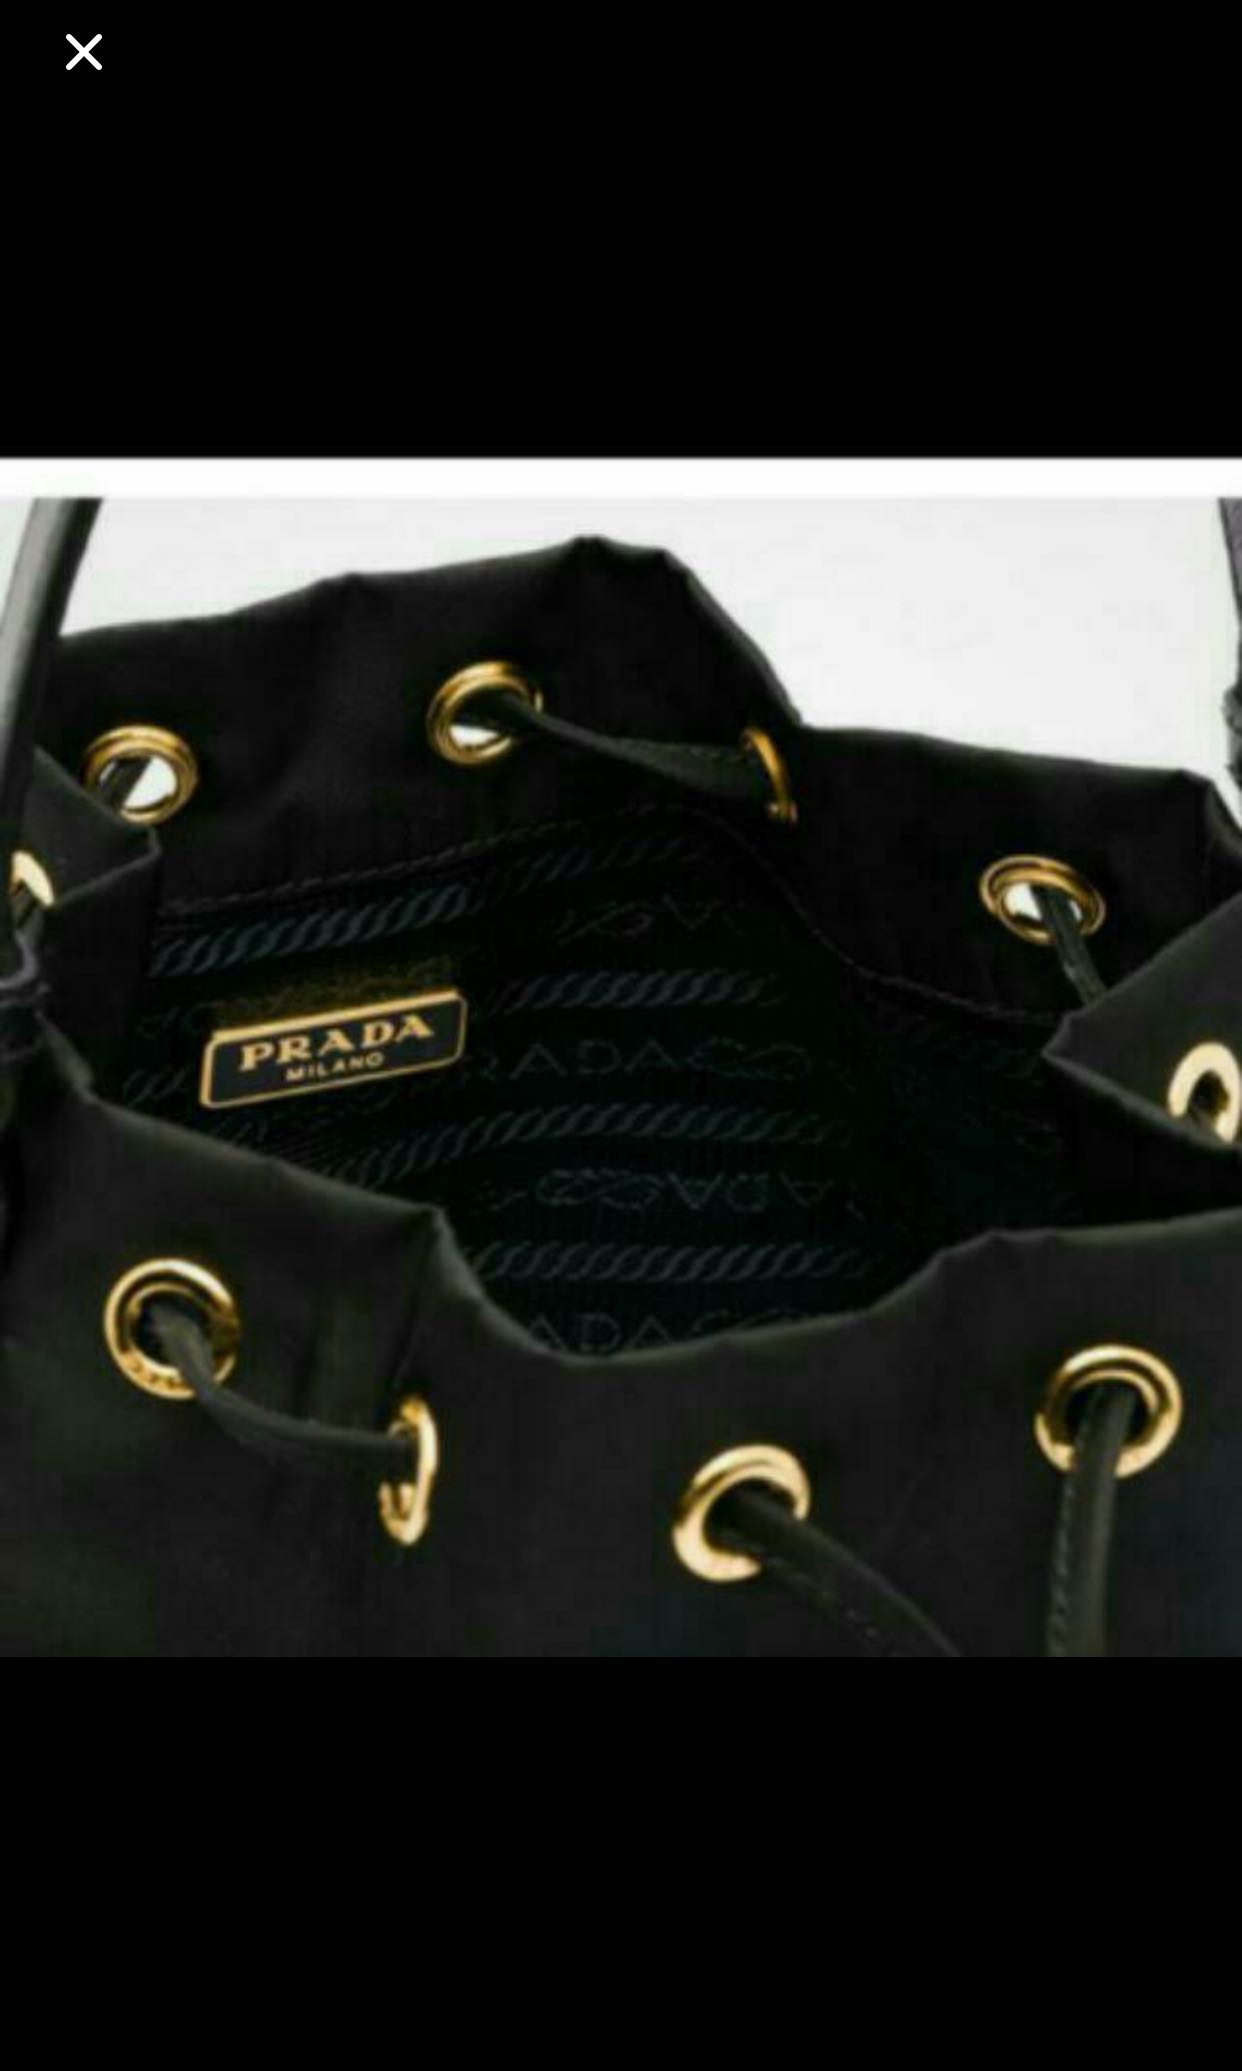 770aceafc211ed Authentic Prada brand new limited edition sling bag, Luxury, Bags &  Wallets, Handbags on Carousell